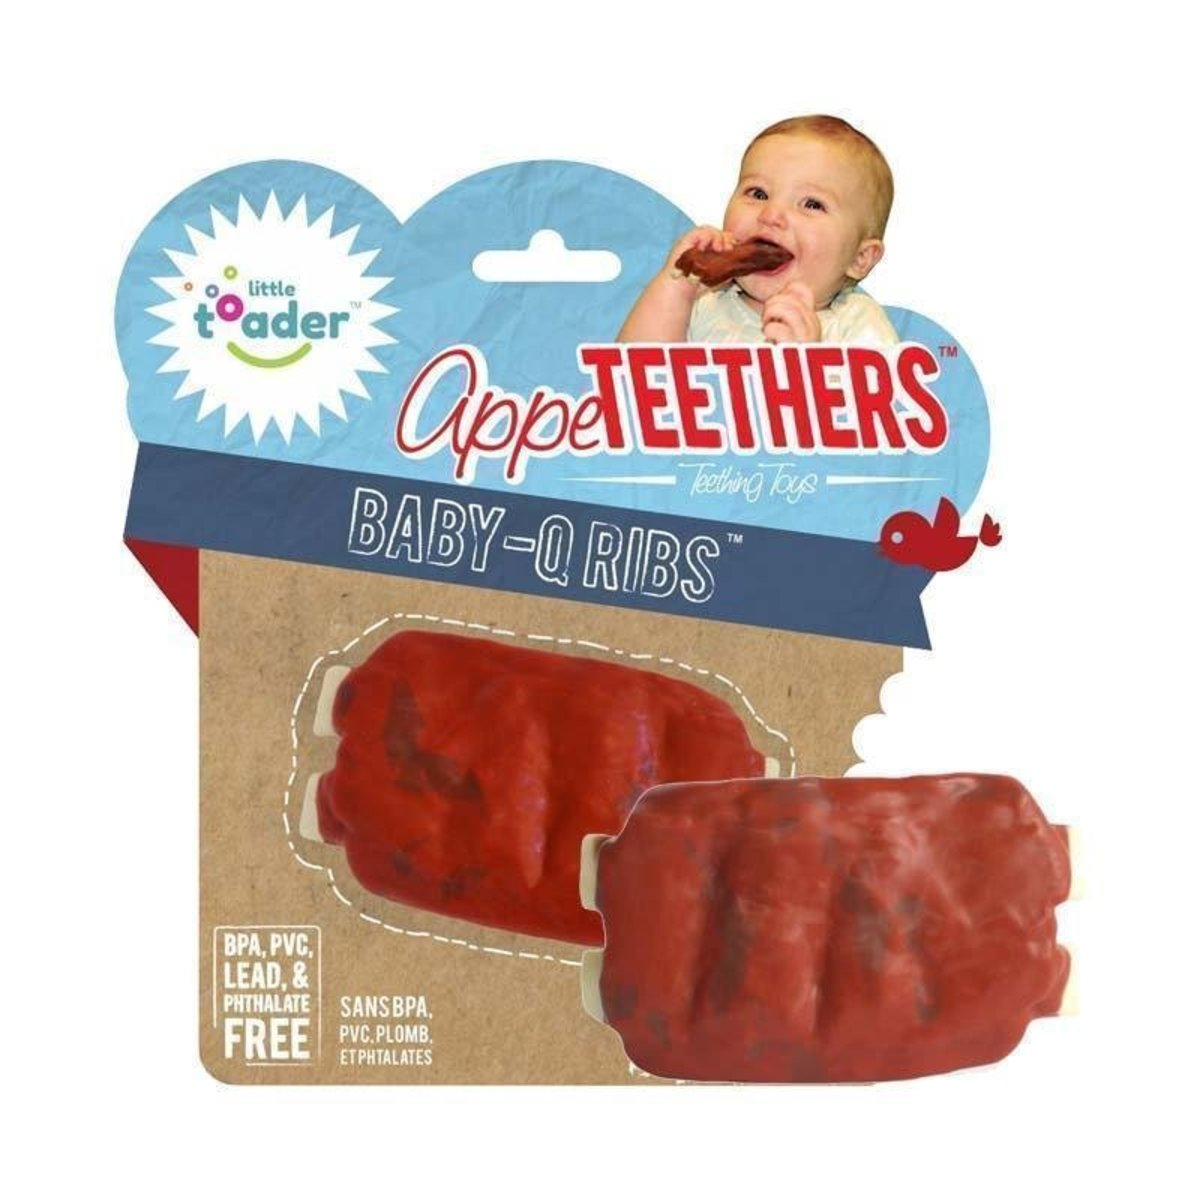 Teething Toys - Soft Silicone Food Shaped BPA Free Teethers (Baby-Q Ribs)